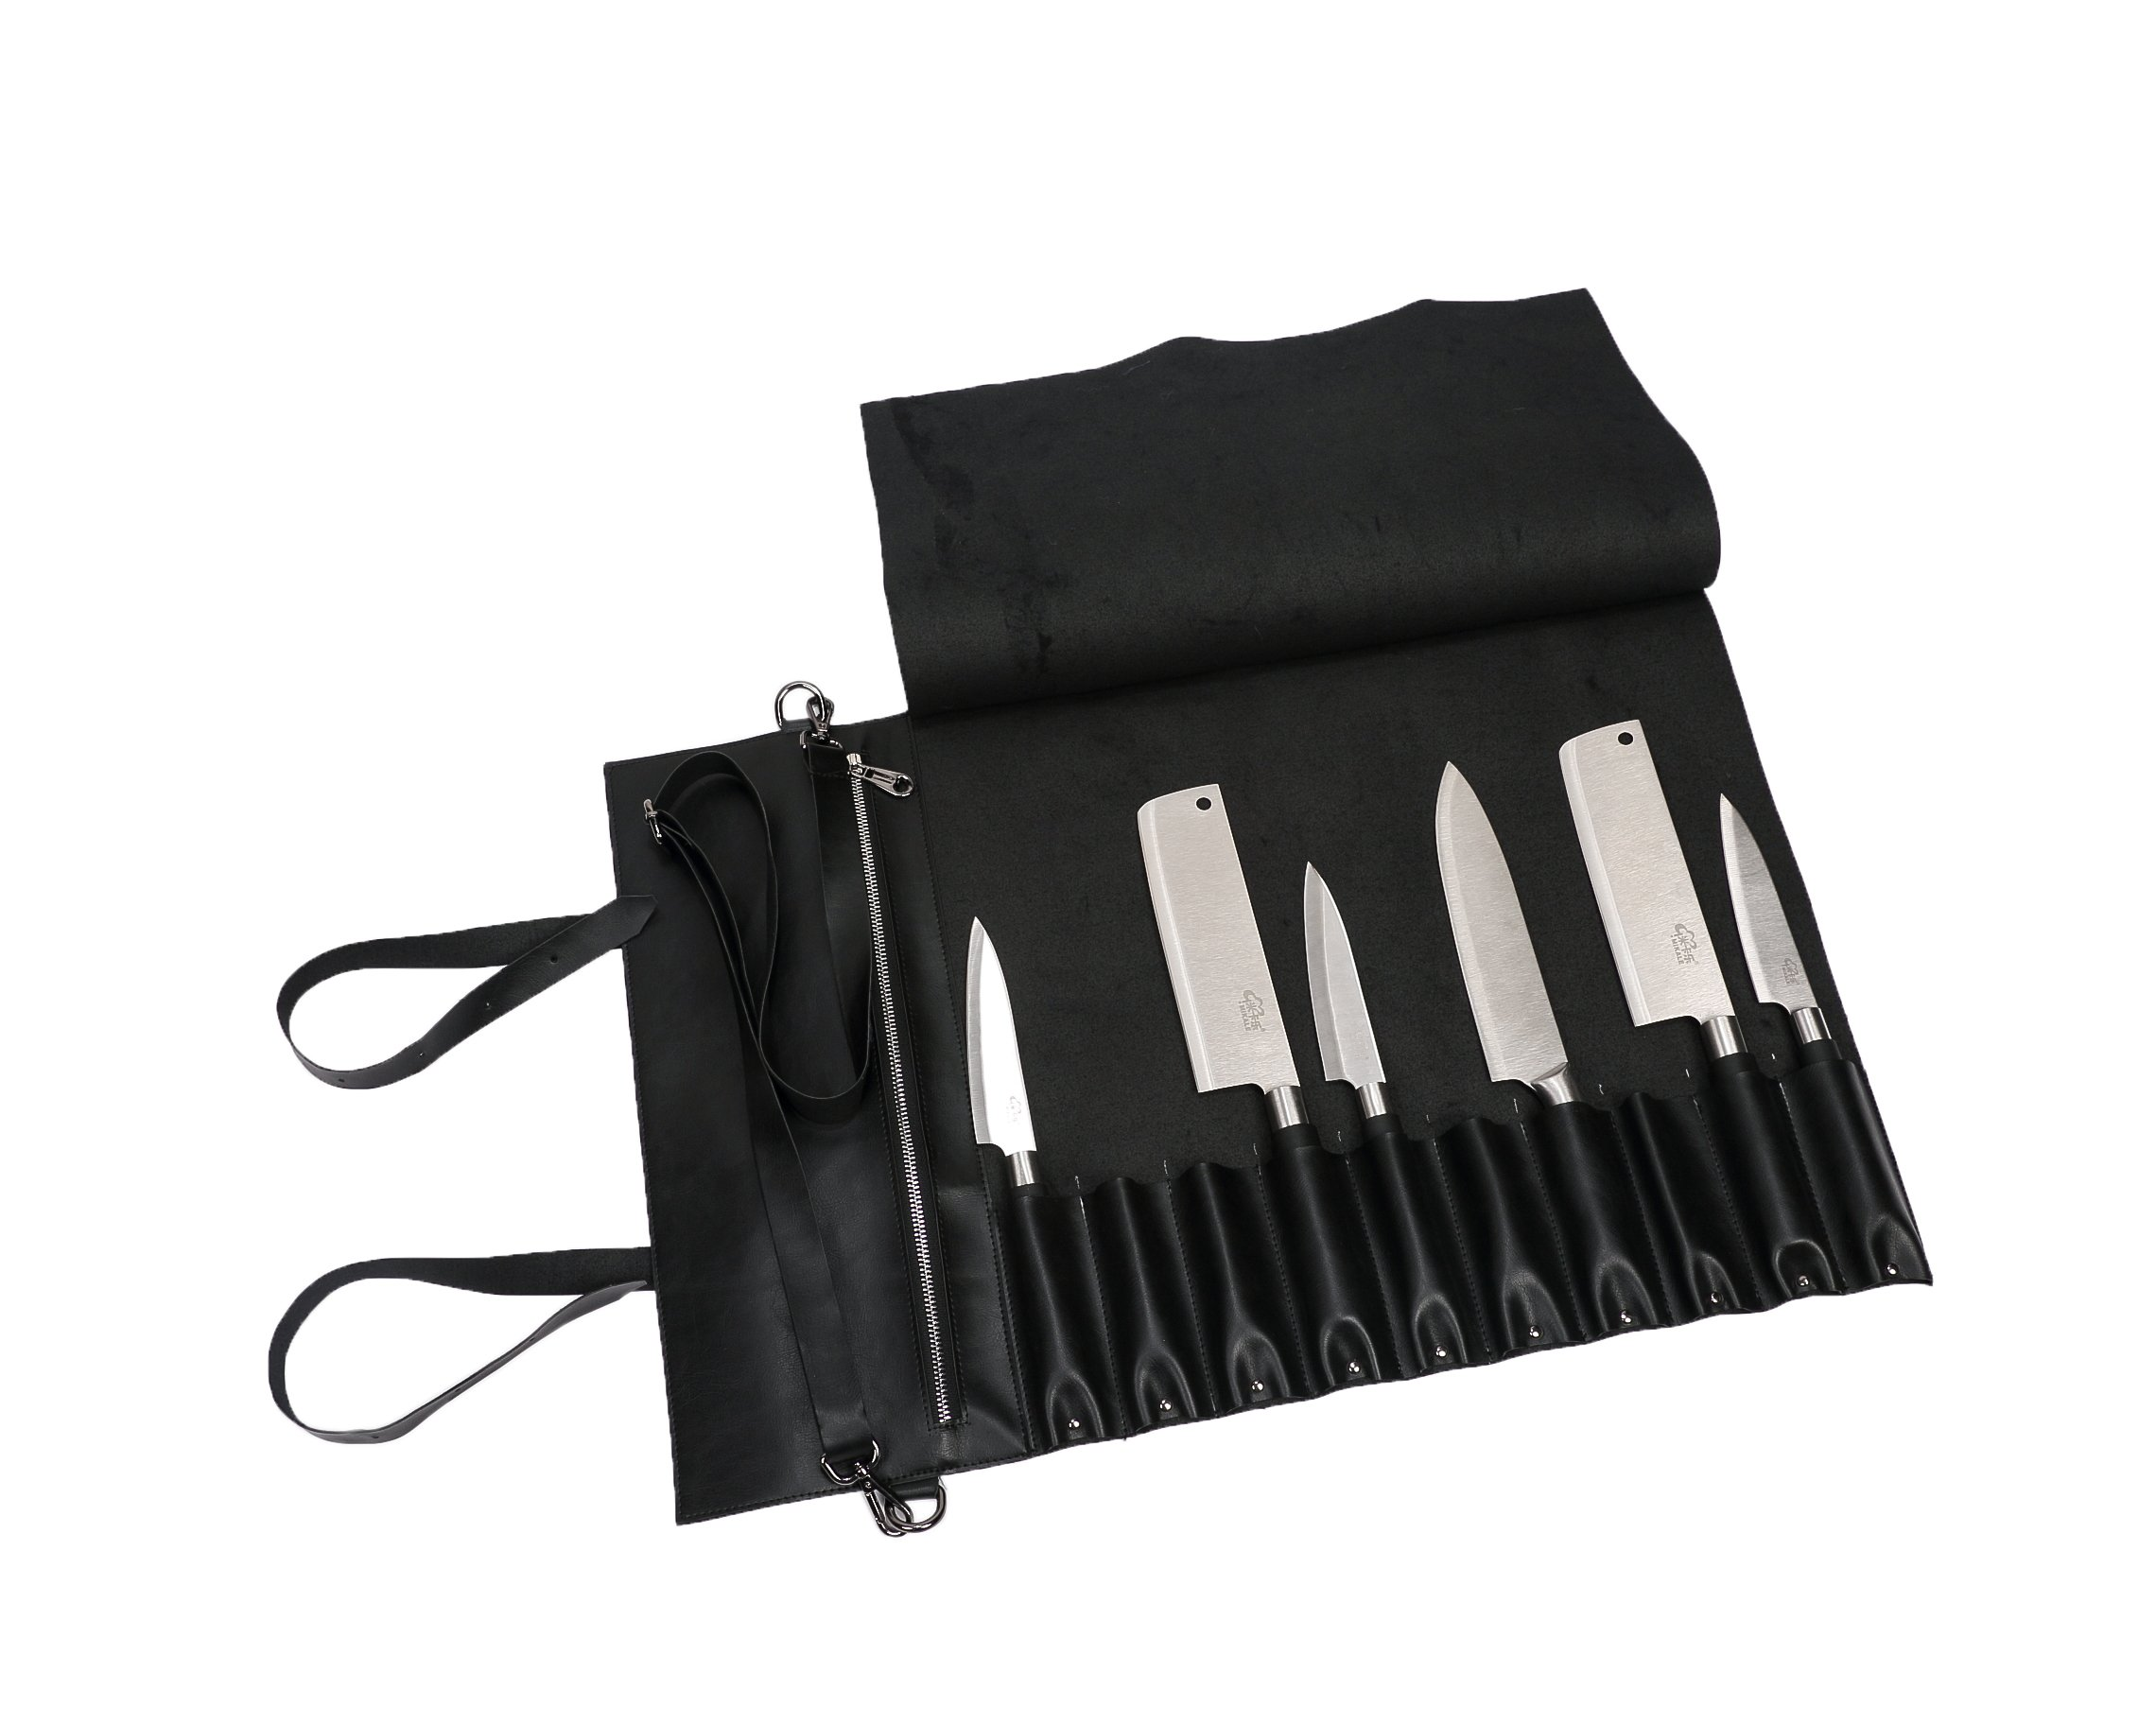 Hersent Waterproof Leather Chef's Knife Roll Up Storage Bag with10 Slots PLUS a Zipper Pocket for Small Kitchen tool Utensils Portable Chef Knife Case With Handy Handle & Shoulder Strap HGJ17-A-US